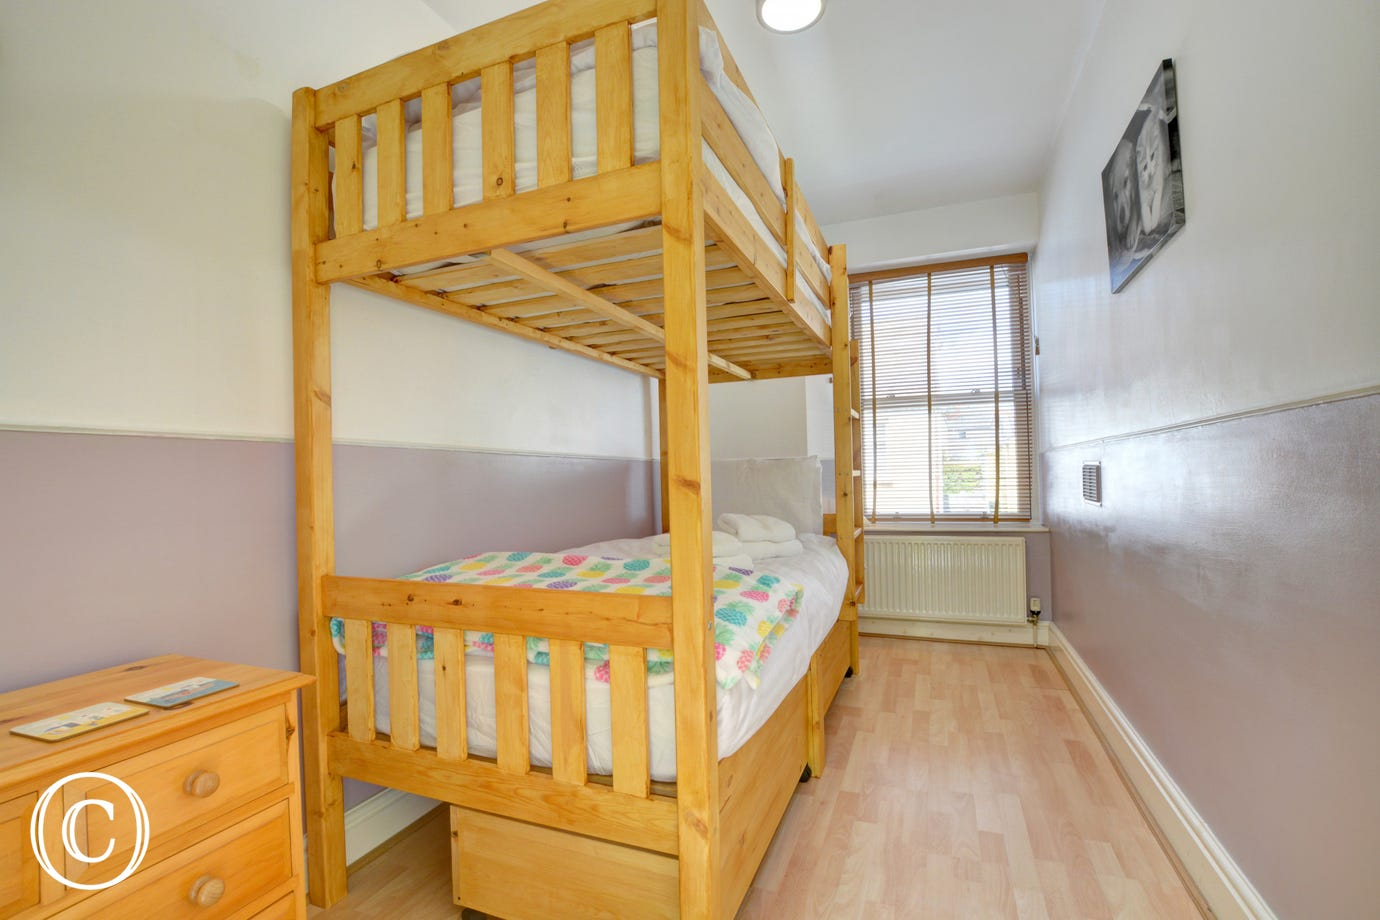 Bunk beds ideal for the children